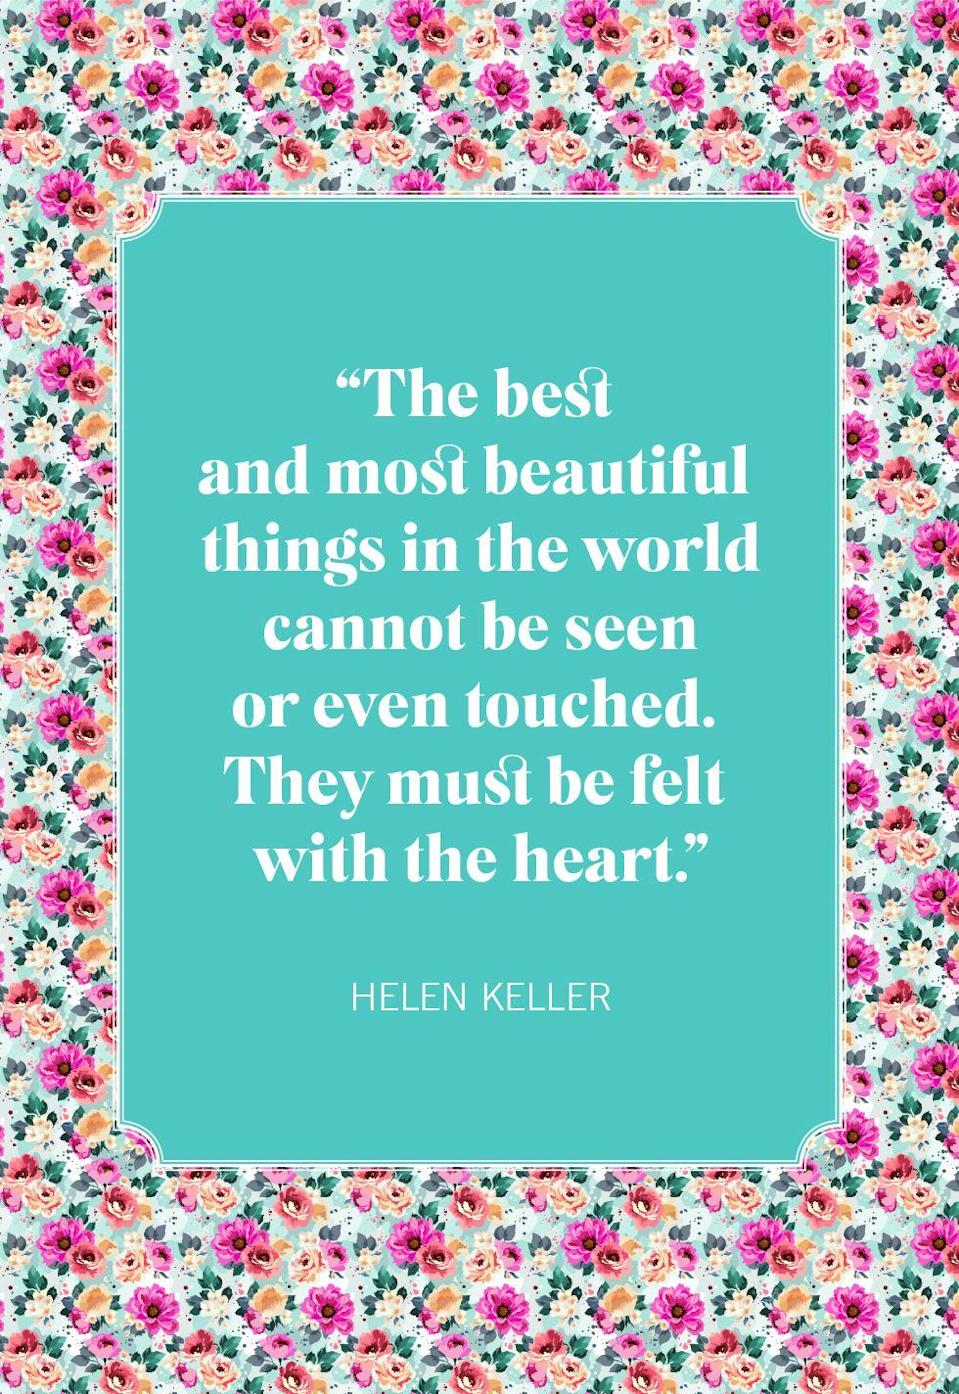 "<p>""The best and most beautiful things in the world cannot be seen or even touched. They must be felt with the heart."" </p>"